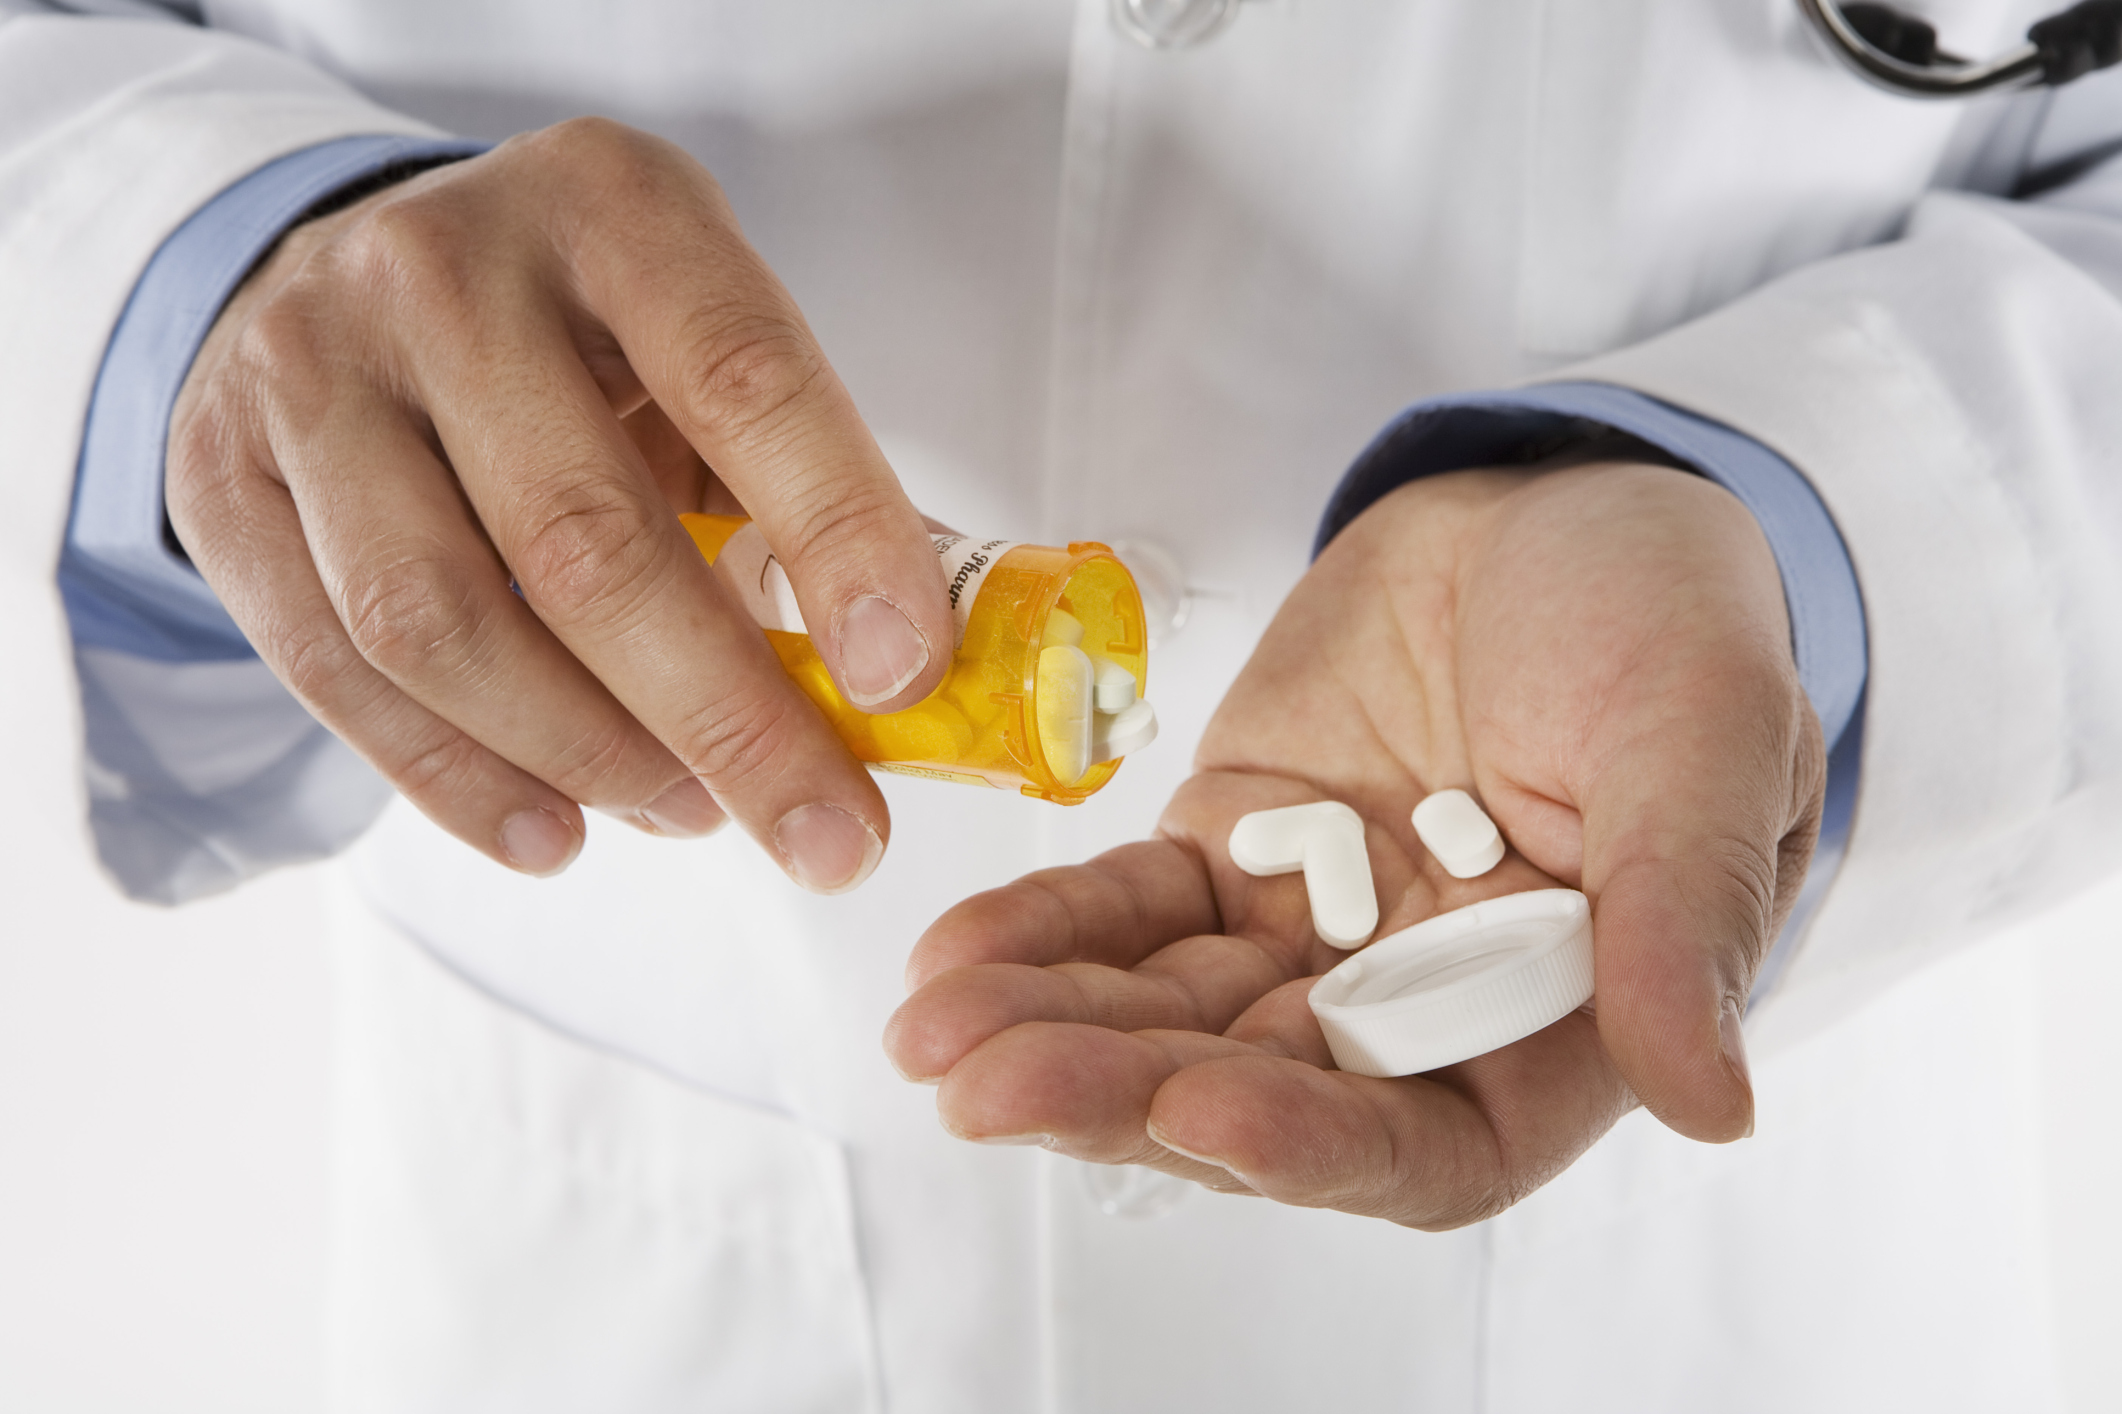 Your medication may deplete your vitamin D stores.